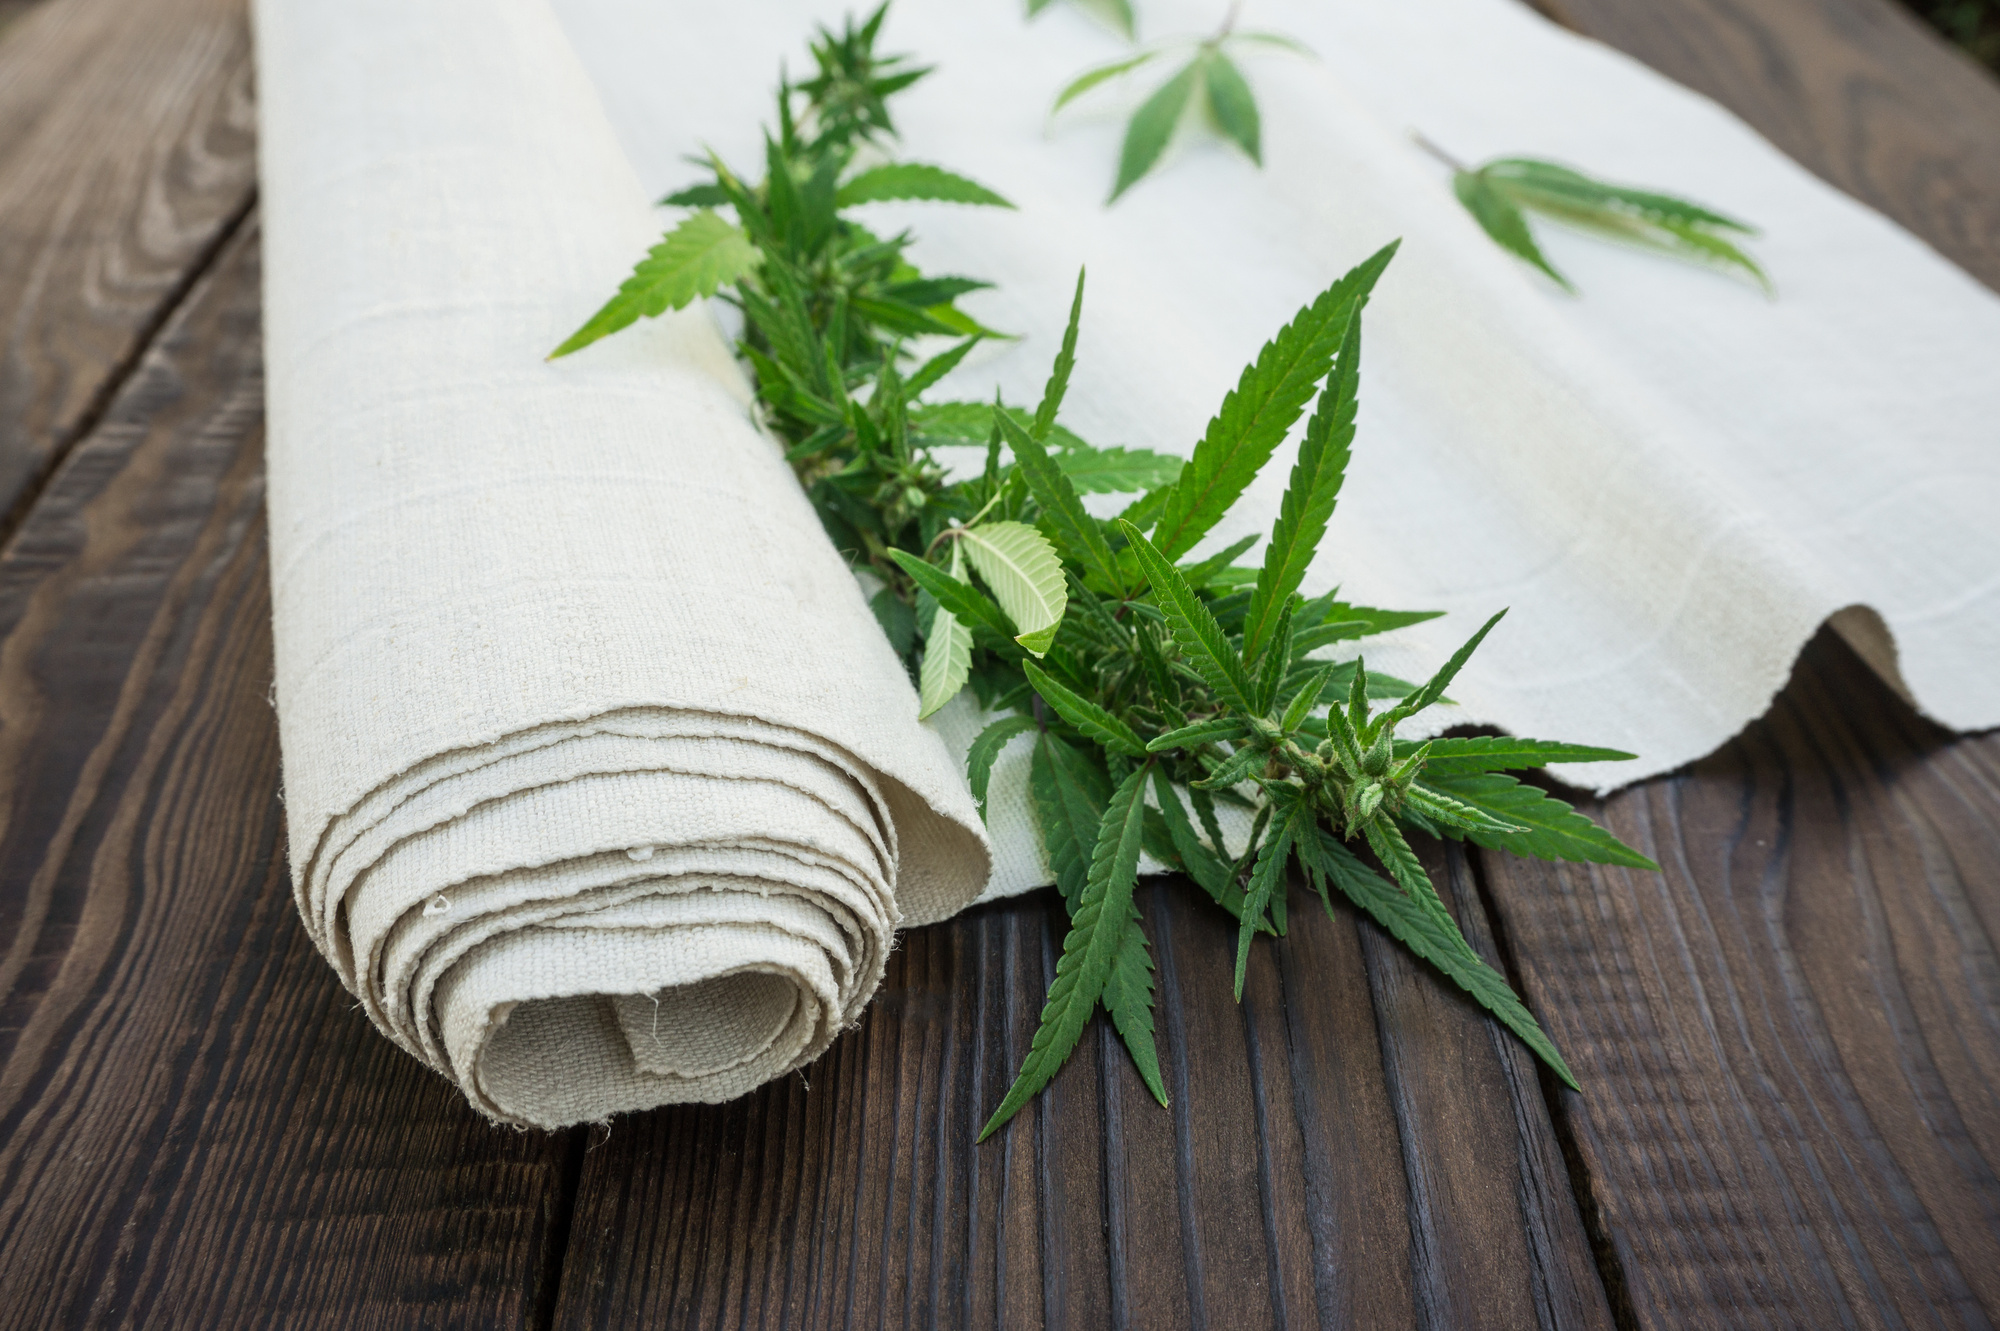 Products Made from Hemp Are Great for the Environment